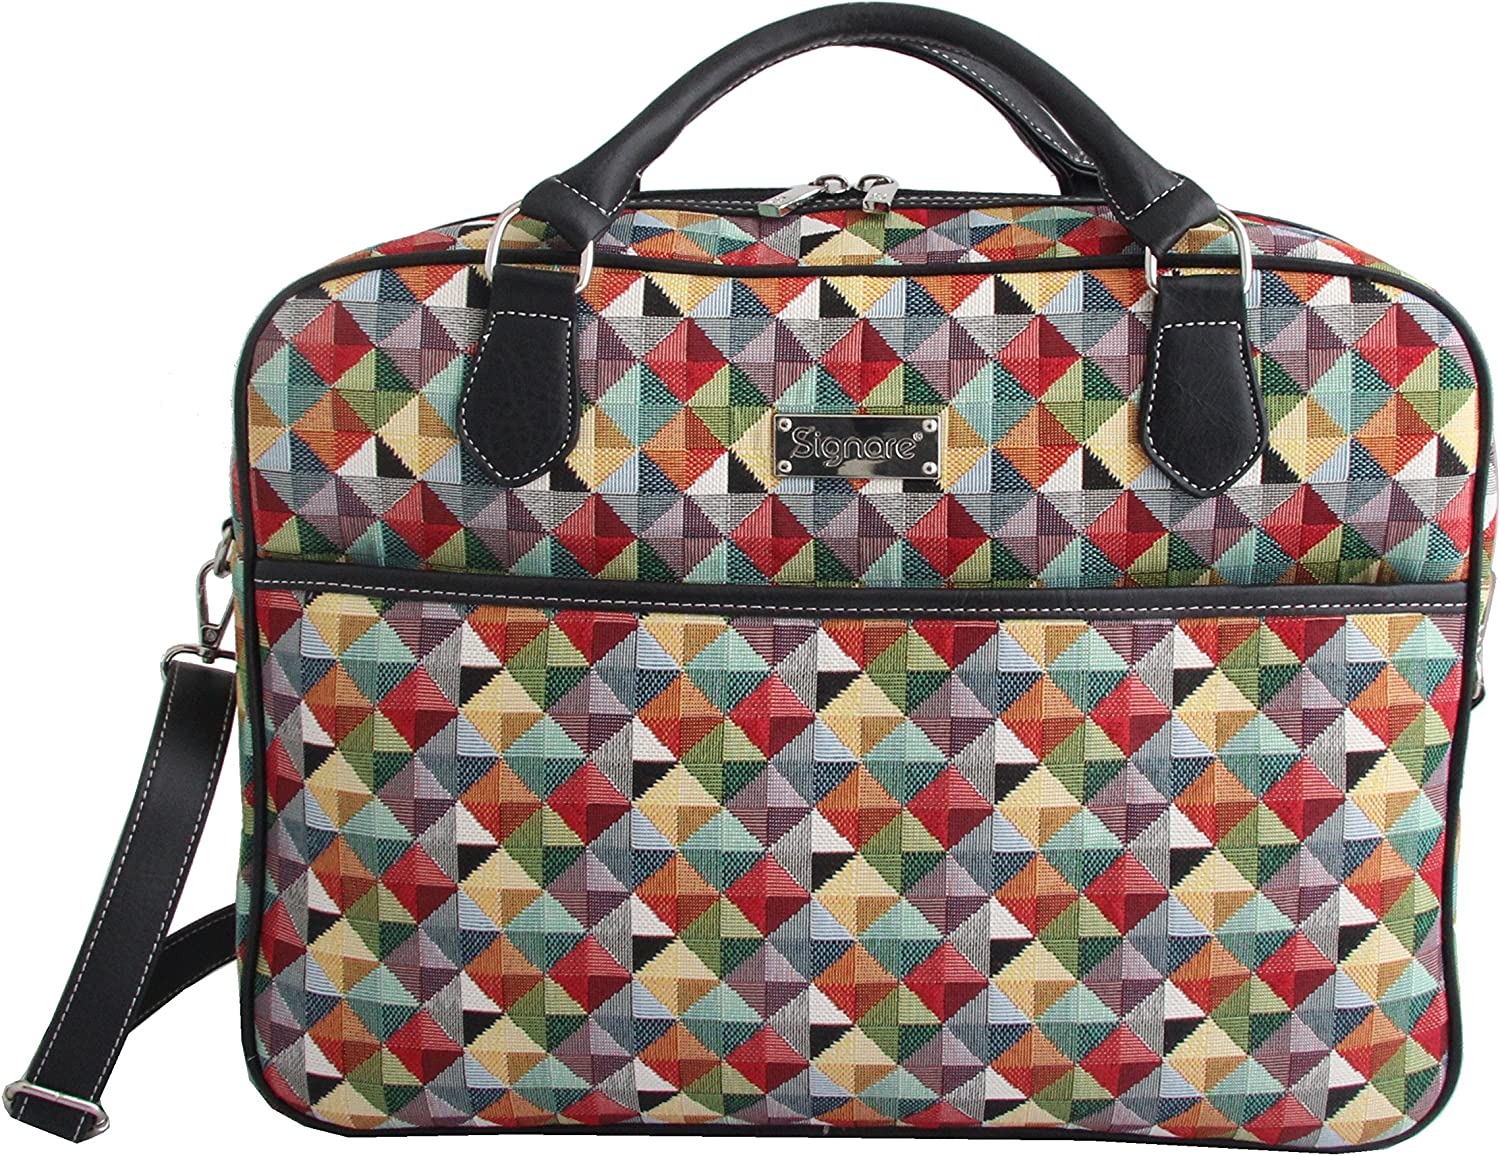 CSignare Tapestry Laptop bag 15.6 computer messenger bag briefcase for Women with Colourful Geometric Design (CPU-MTRI)